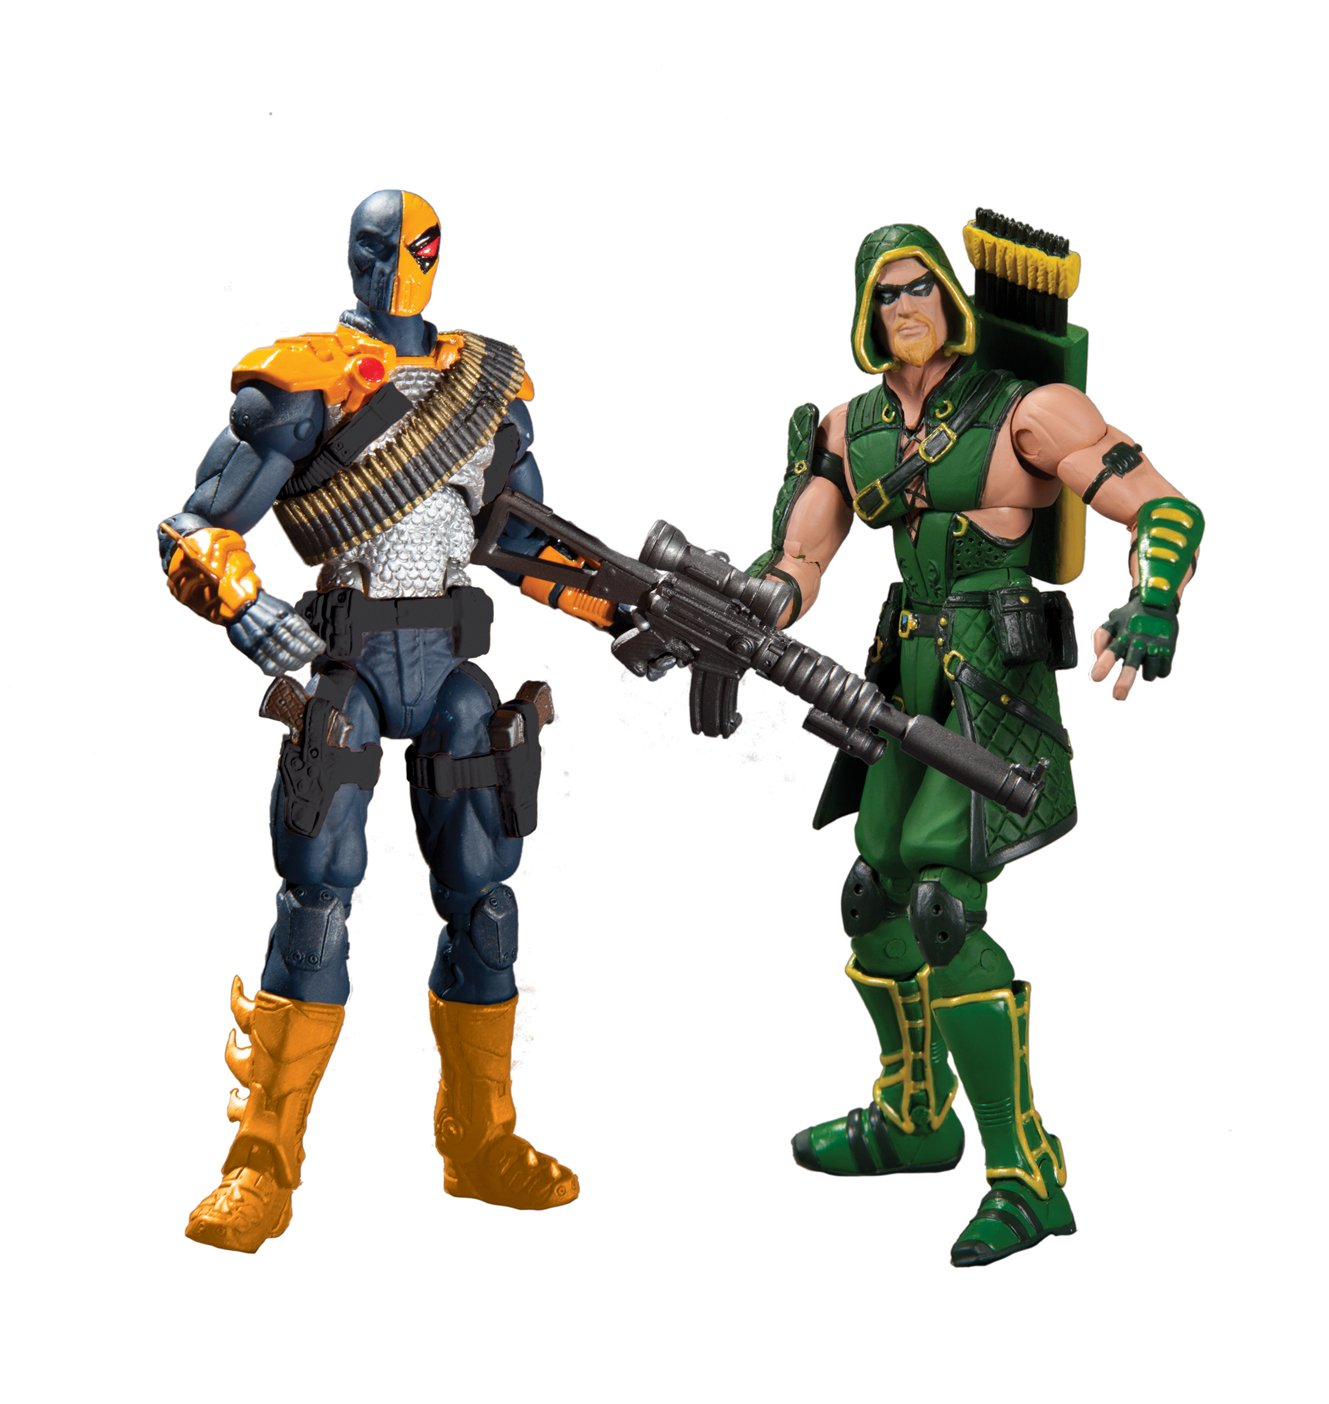 DC Collectibles Injustice Deathstroke vs. Green Arrow Action Figure, 2-Pack